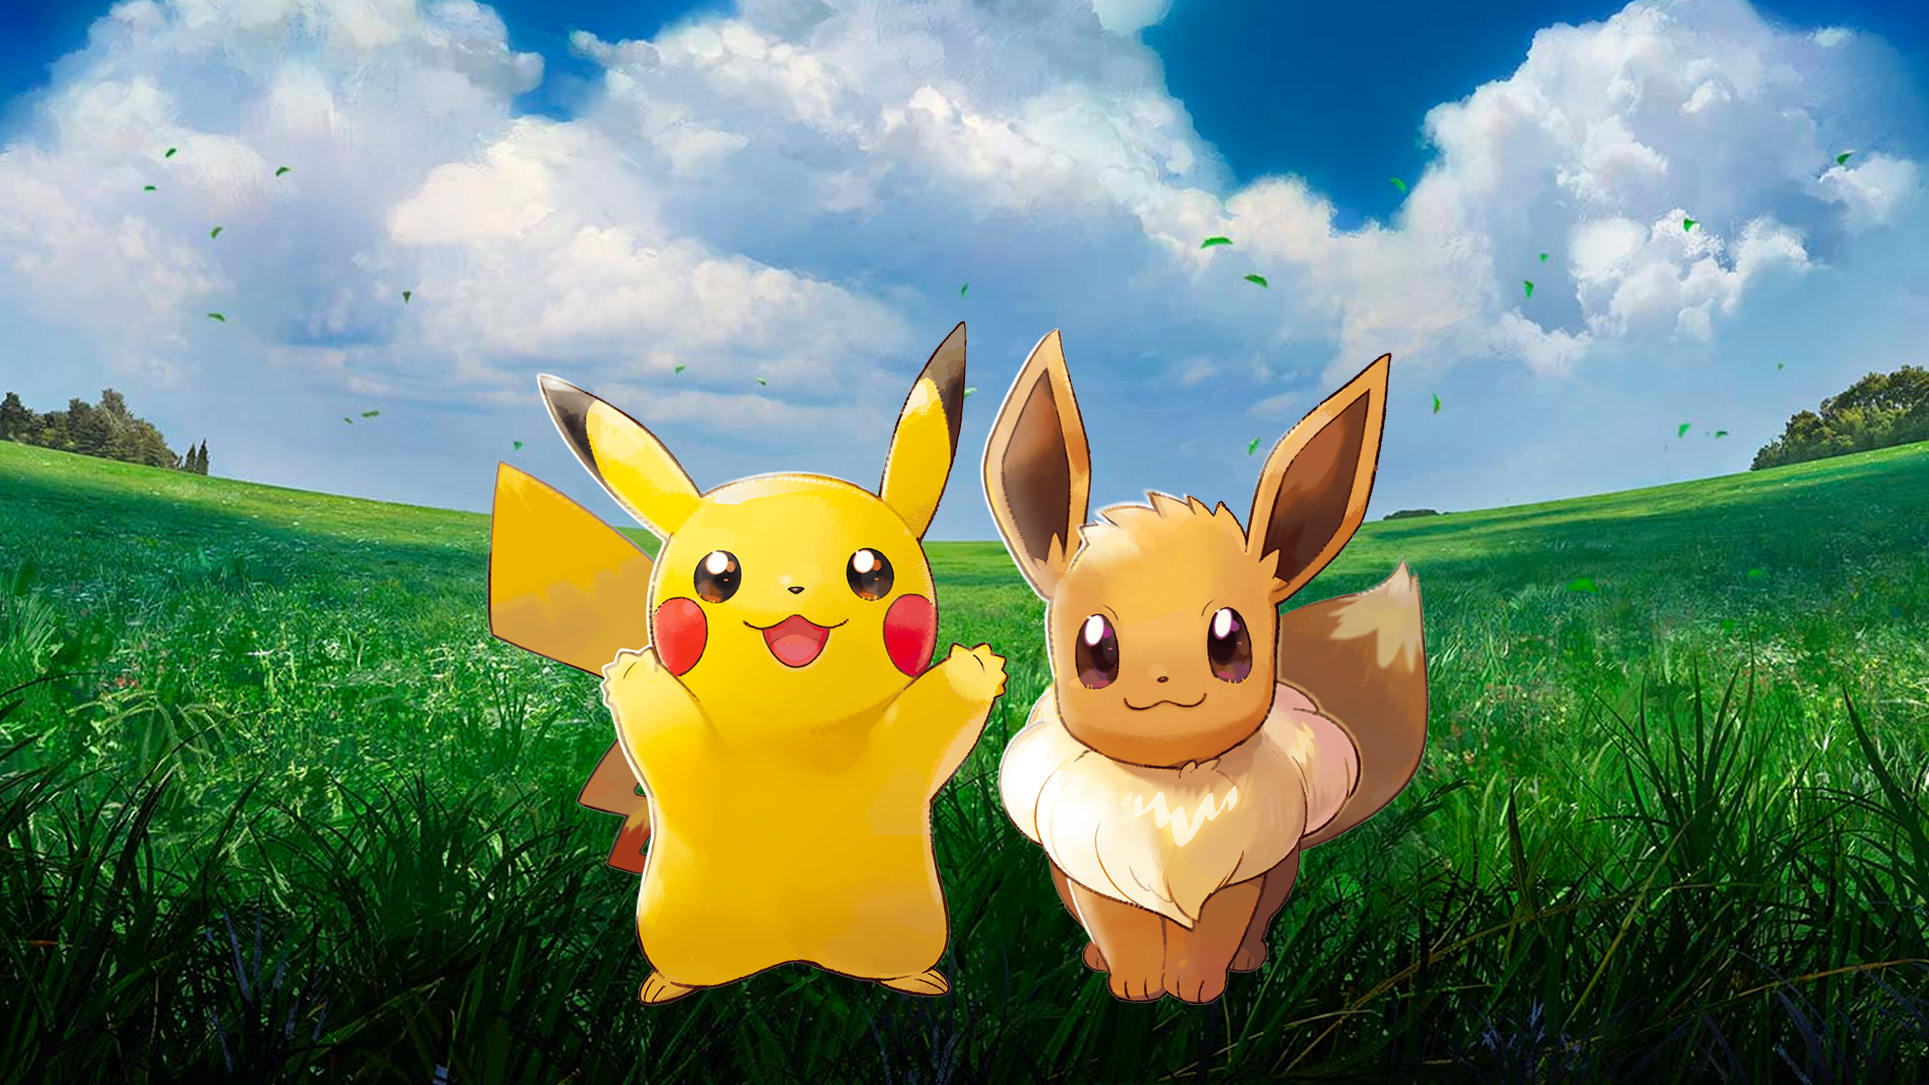 Pokemon Let S Go Pikachu Eevee V2 Wallpapers Cat With Monocle